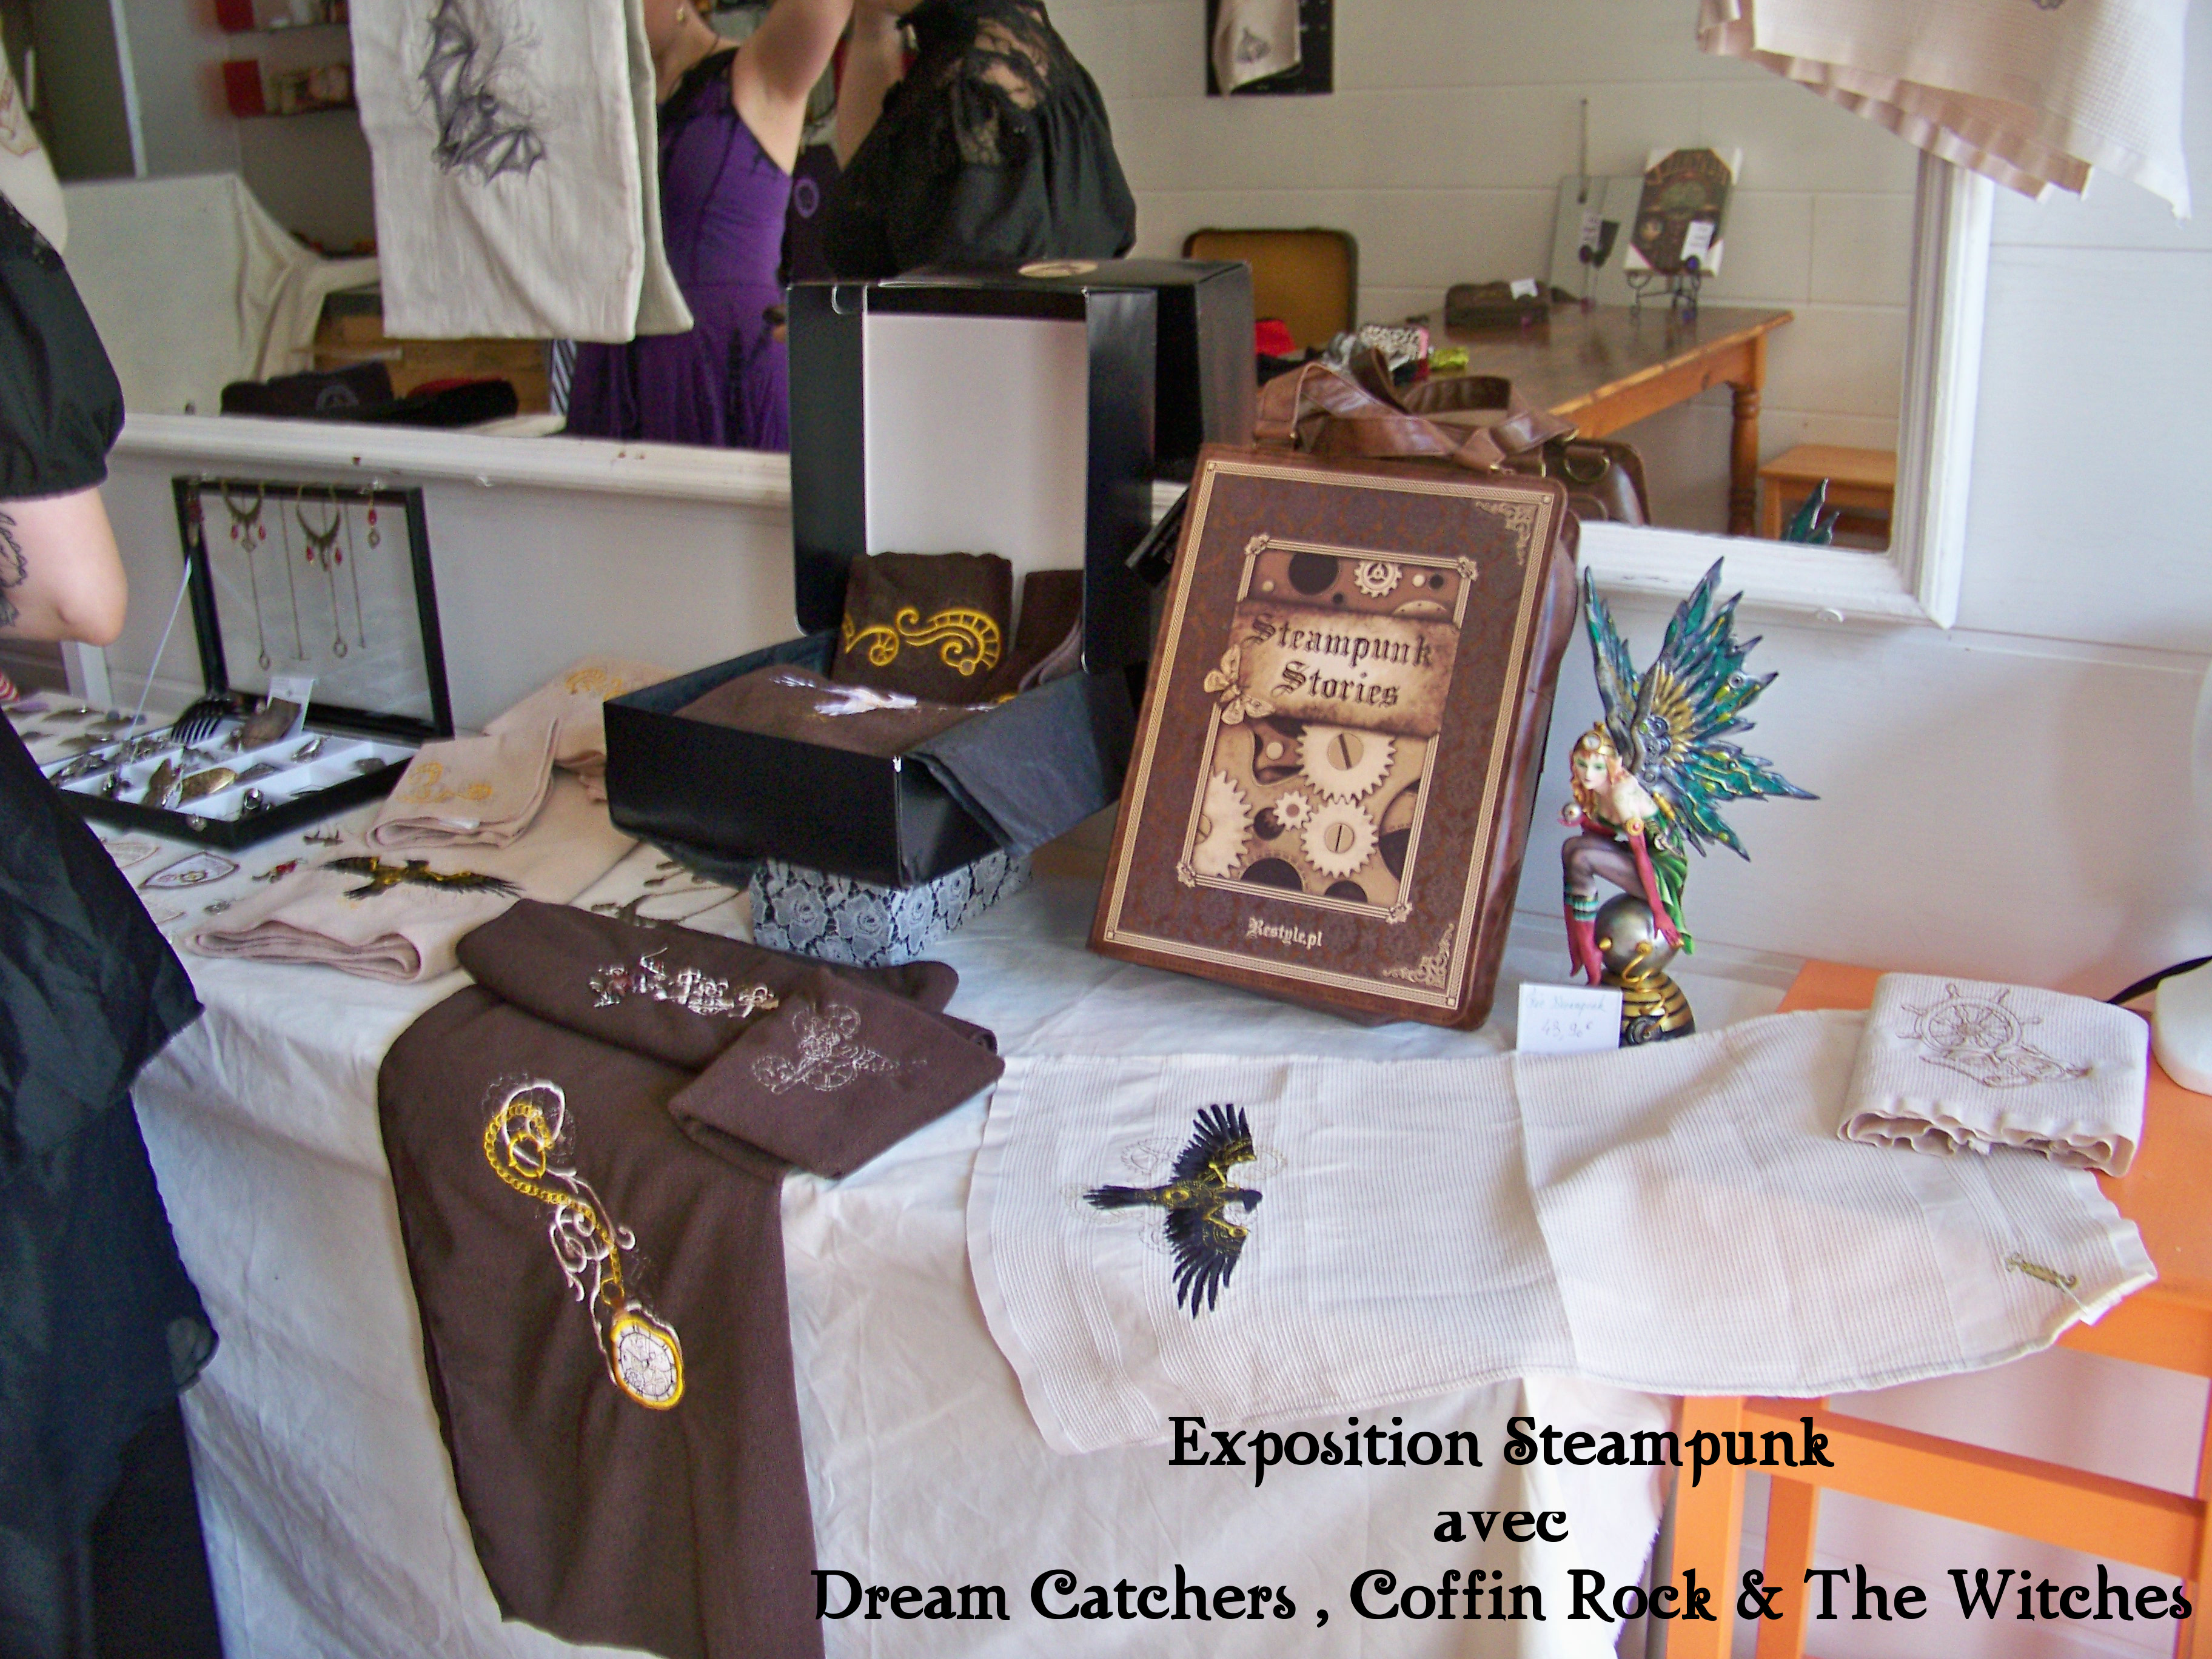 Exposition Steampunk avec Dream Catchers, Coffin Rock et The Witches